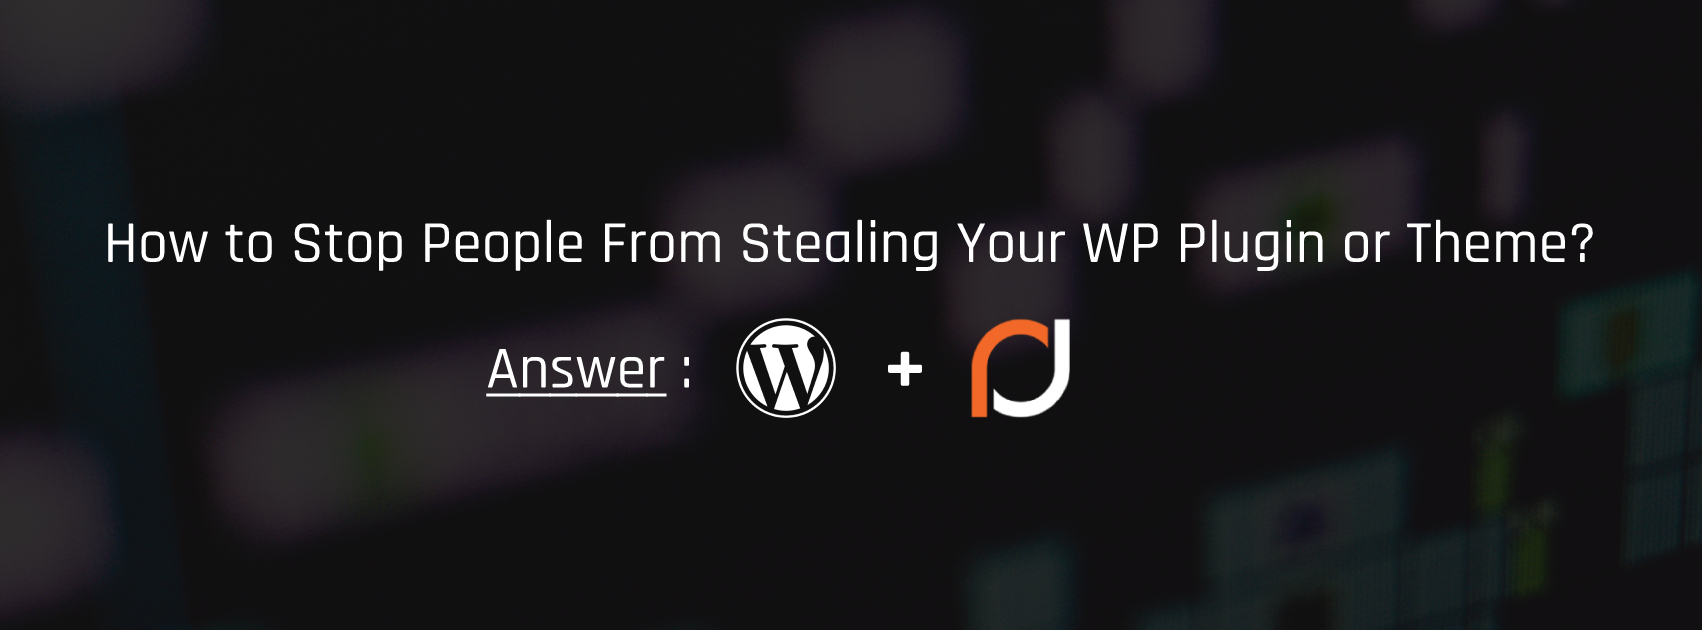 Stop People From Stealing Your Work: Implement WordPress Plugin/Theme Licensing